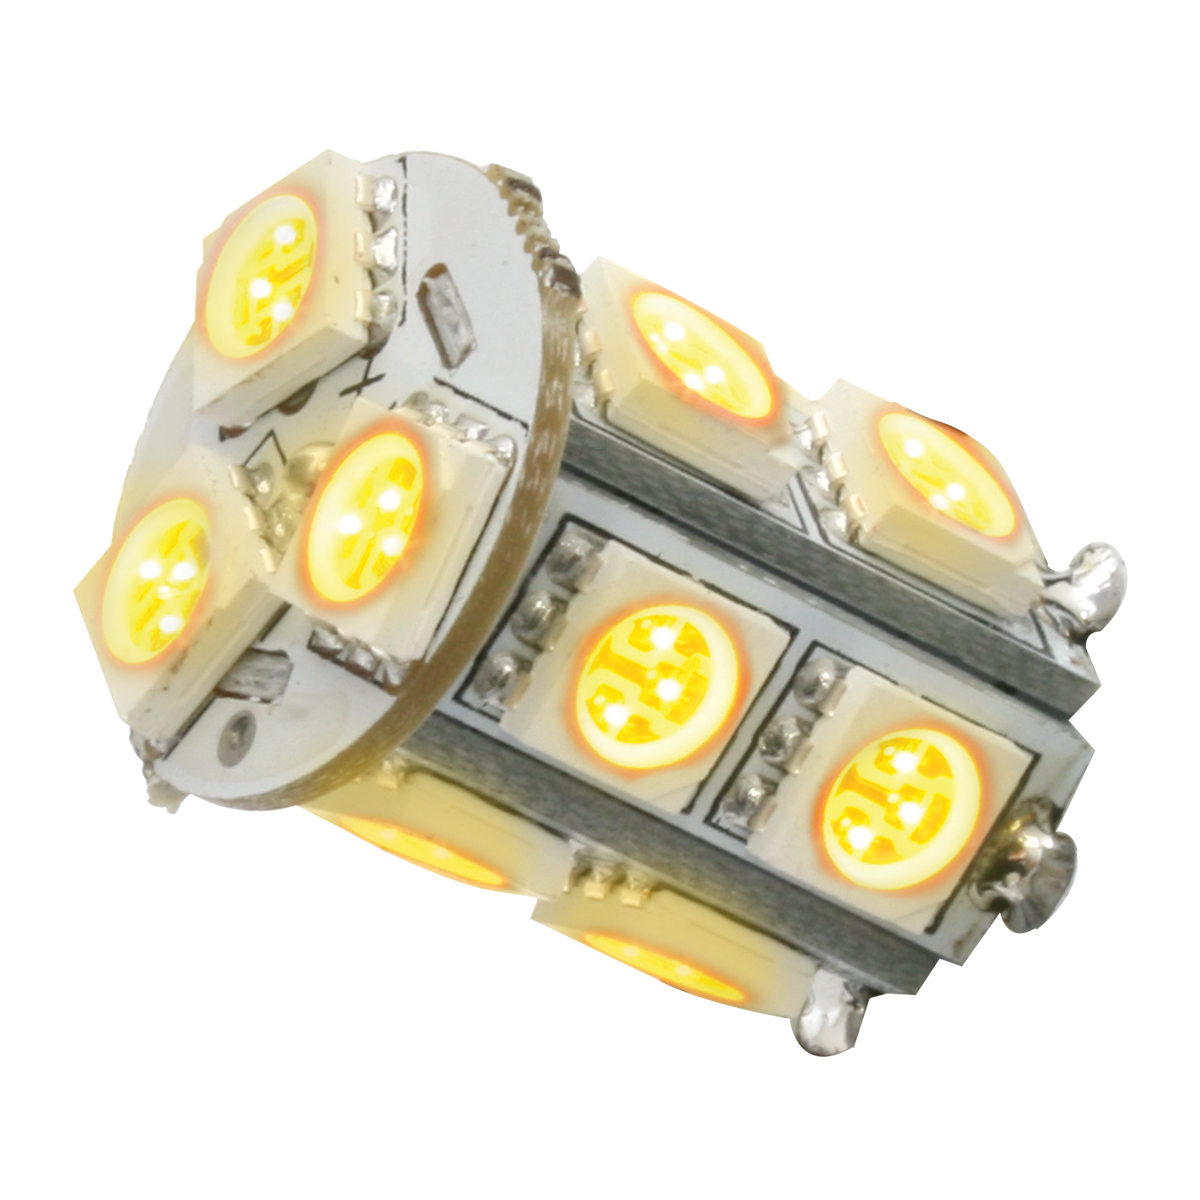 74960 #1156 Tower Style 13 LED Light Bulb